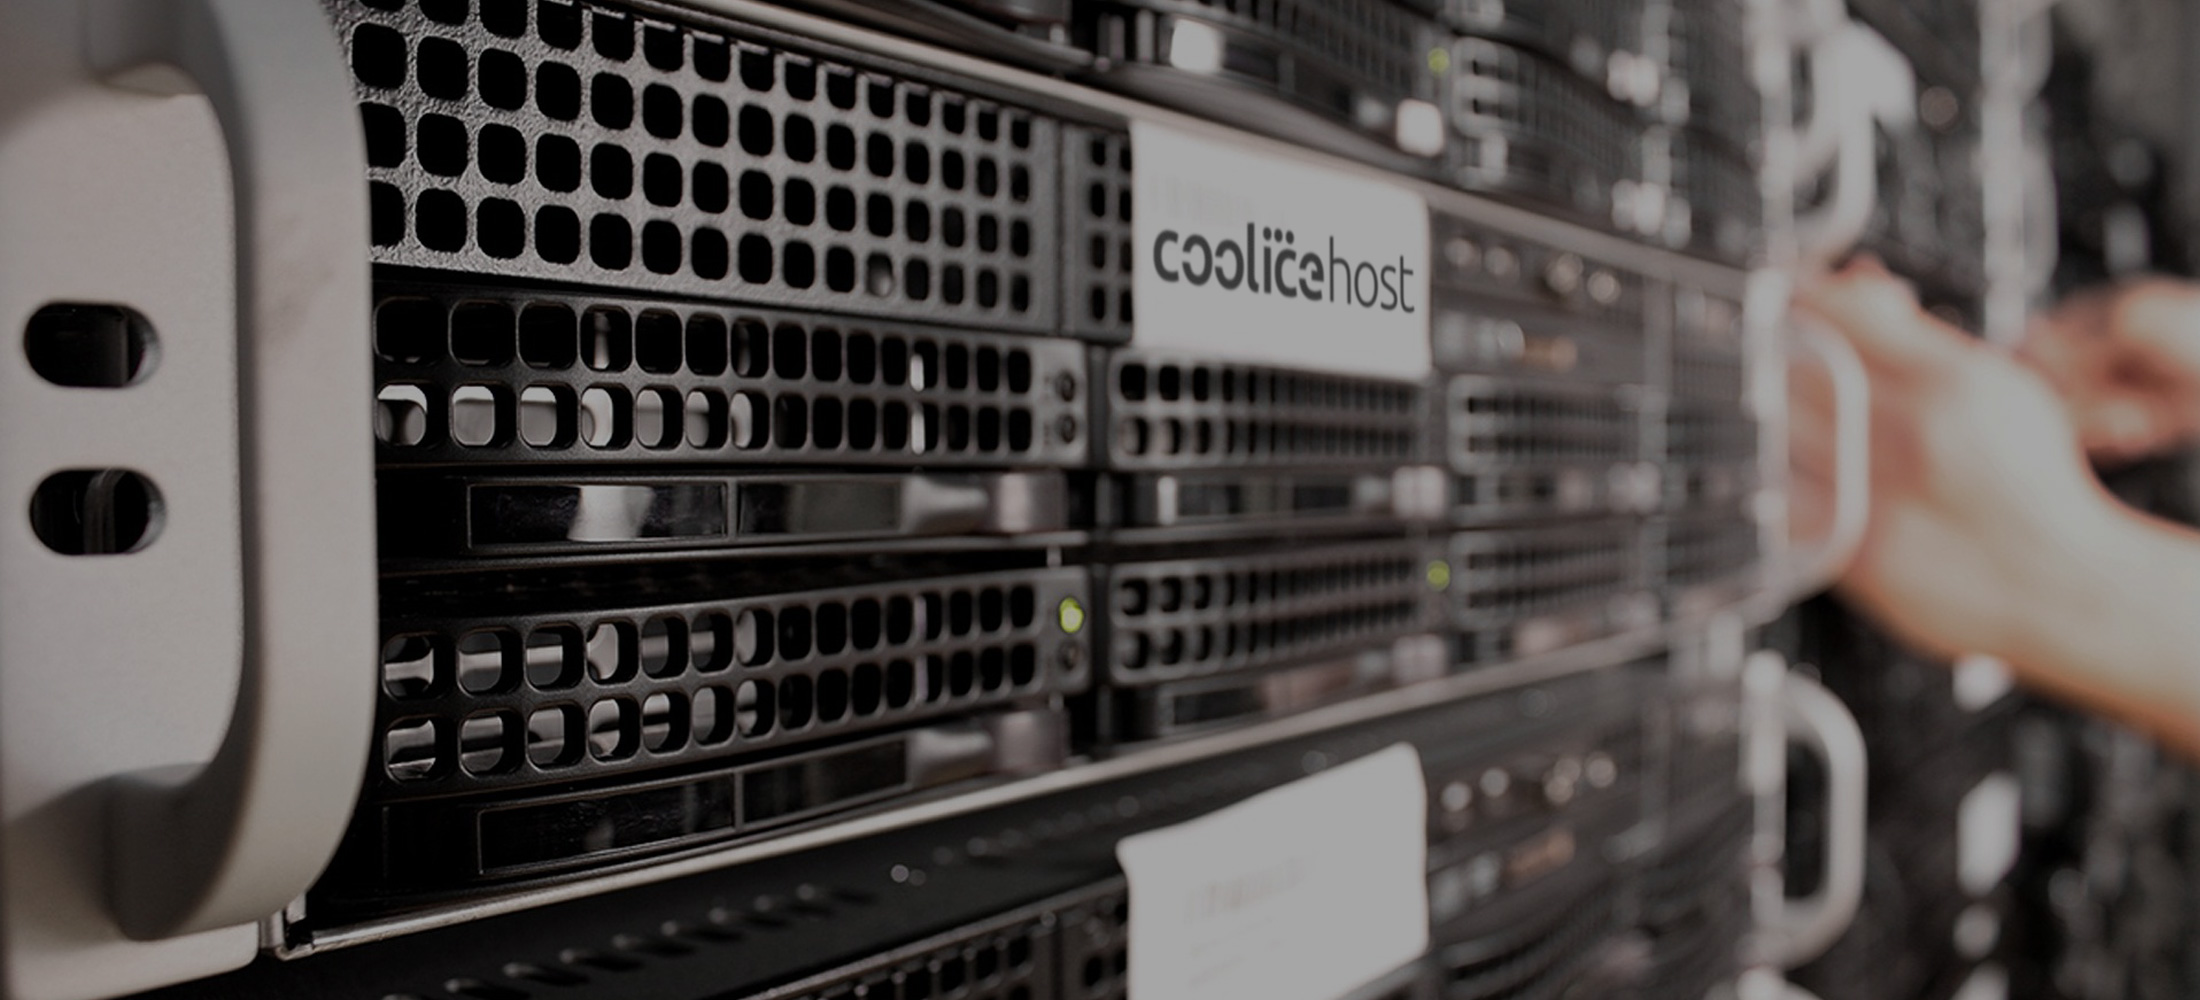 coolicehost.com